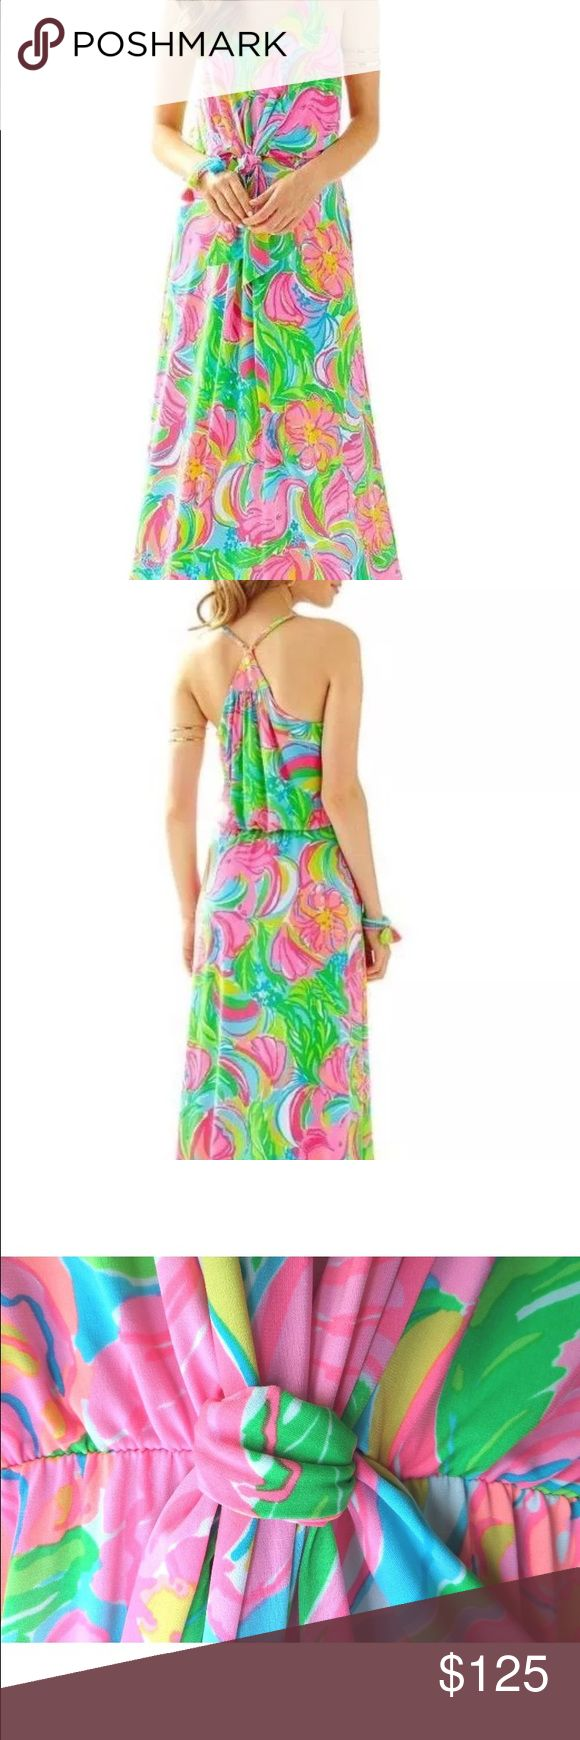 Lilly Pulitzer Rosa Maxi Dress - So A Peeling sz M New with tags, never worn. So cute and very flattering. Lilly Pulitzer Dresses Maxi